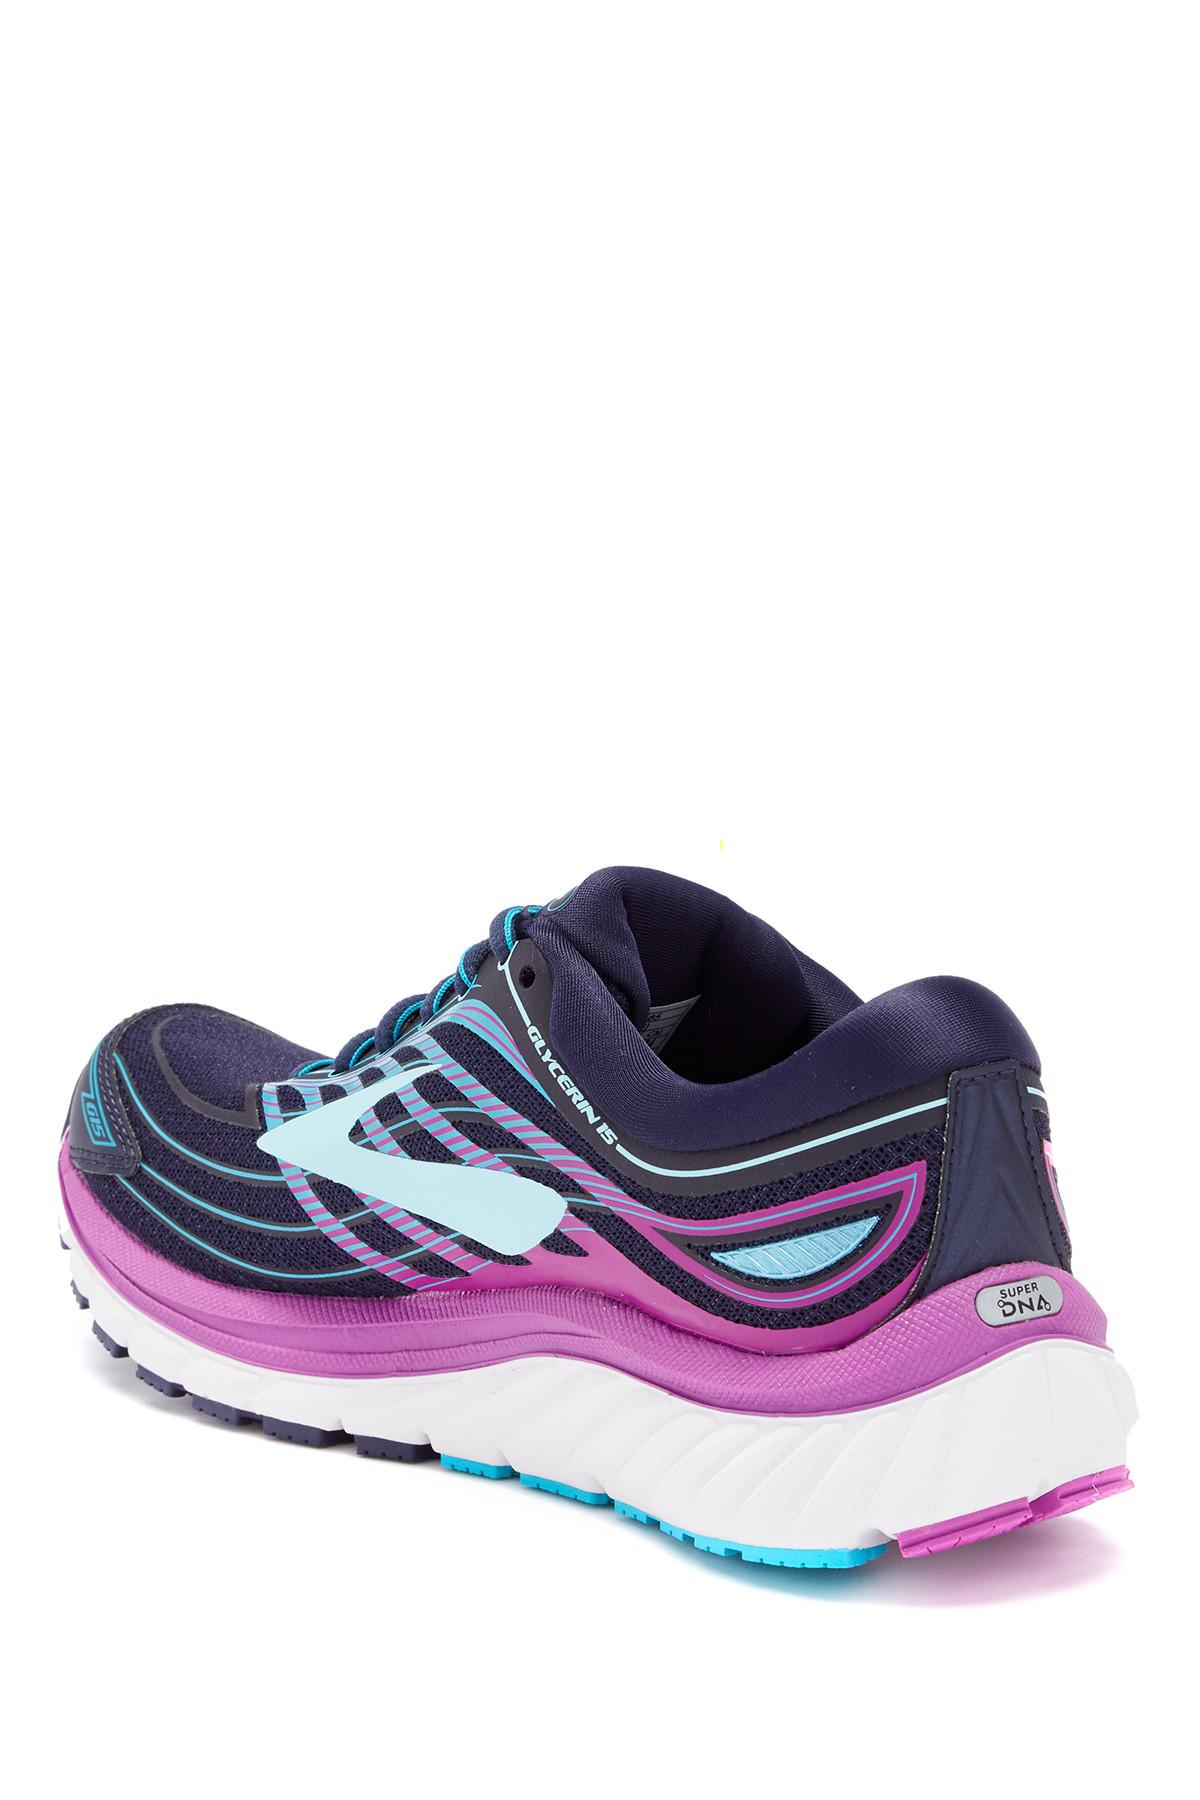 5016821f577 Brooks - Blue Glycerin 15 Running Shoe - Lyst. View fullscreen